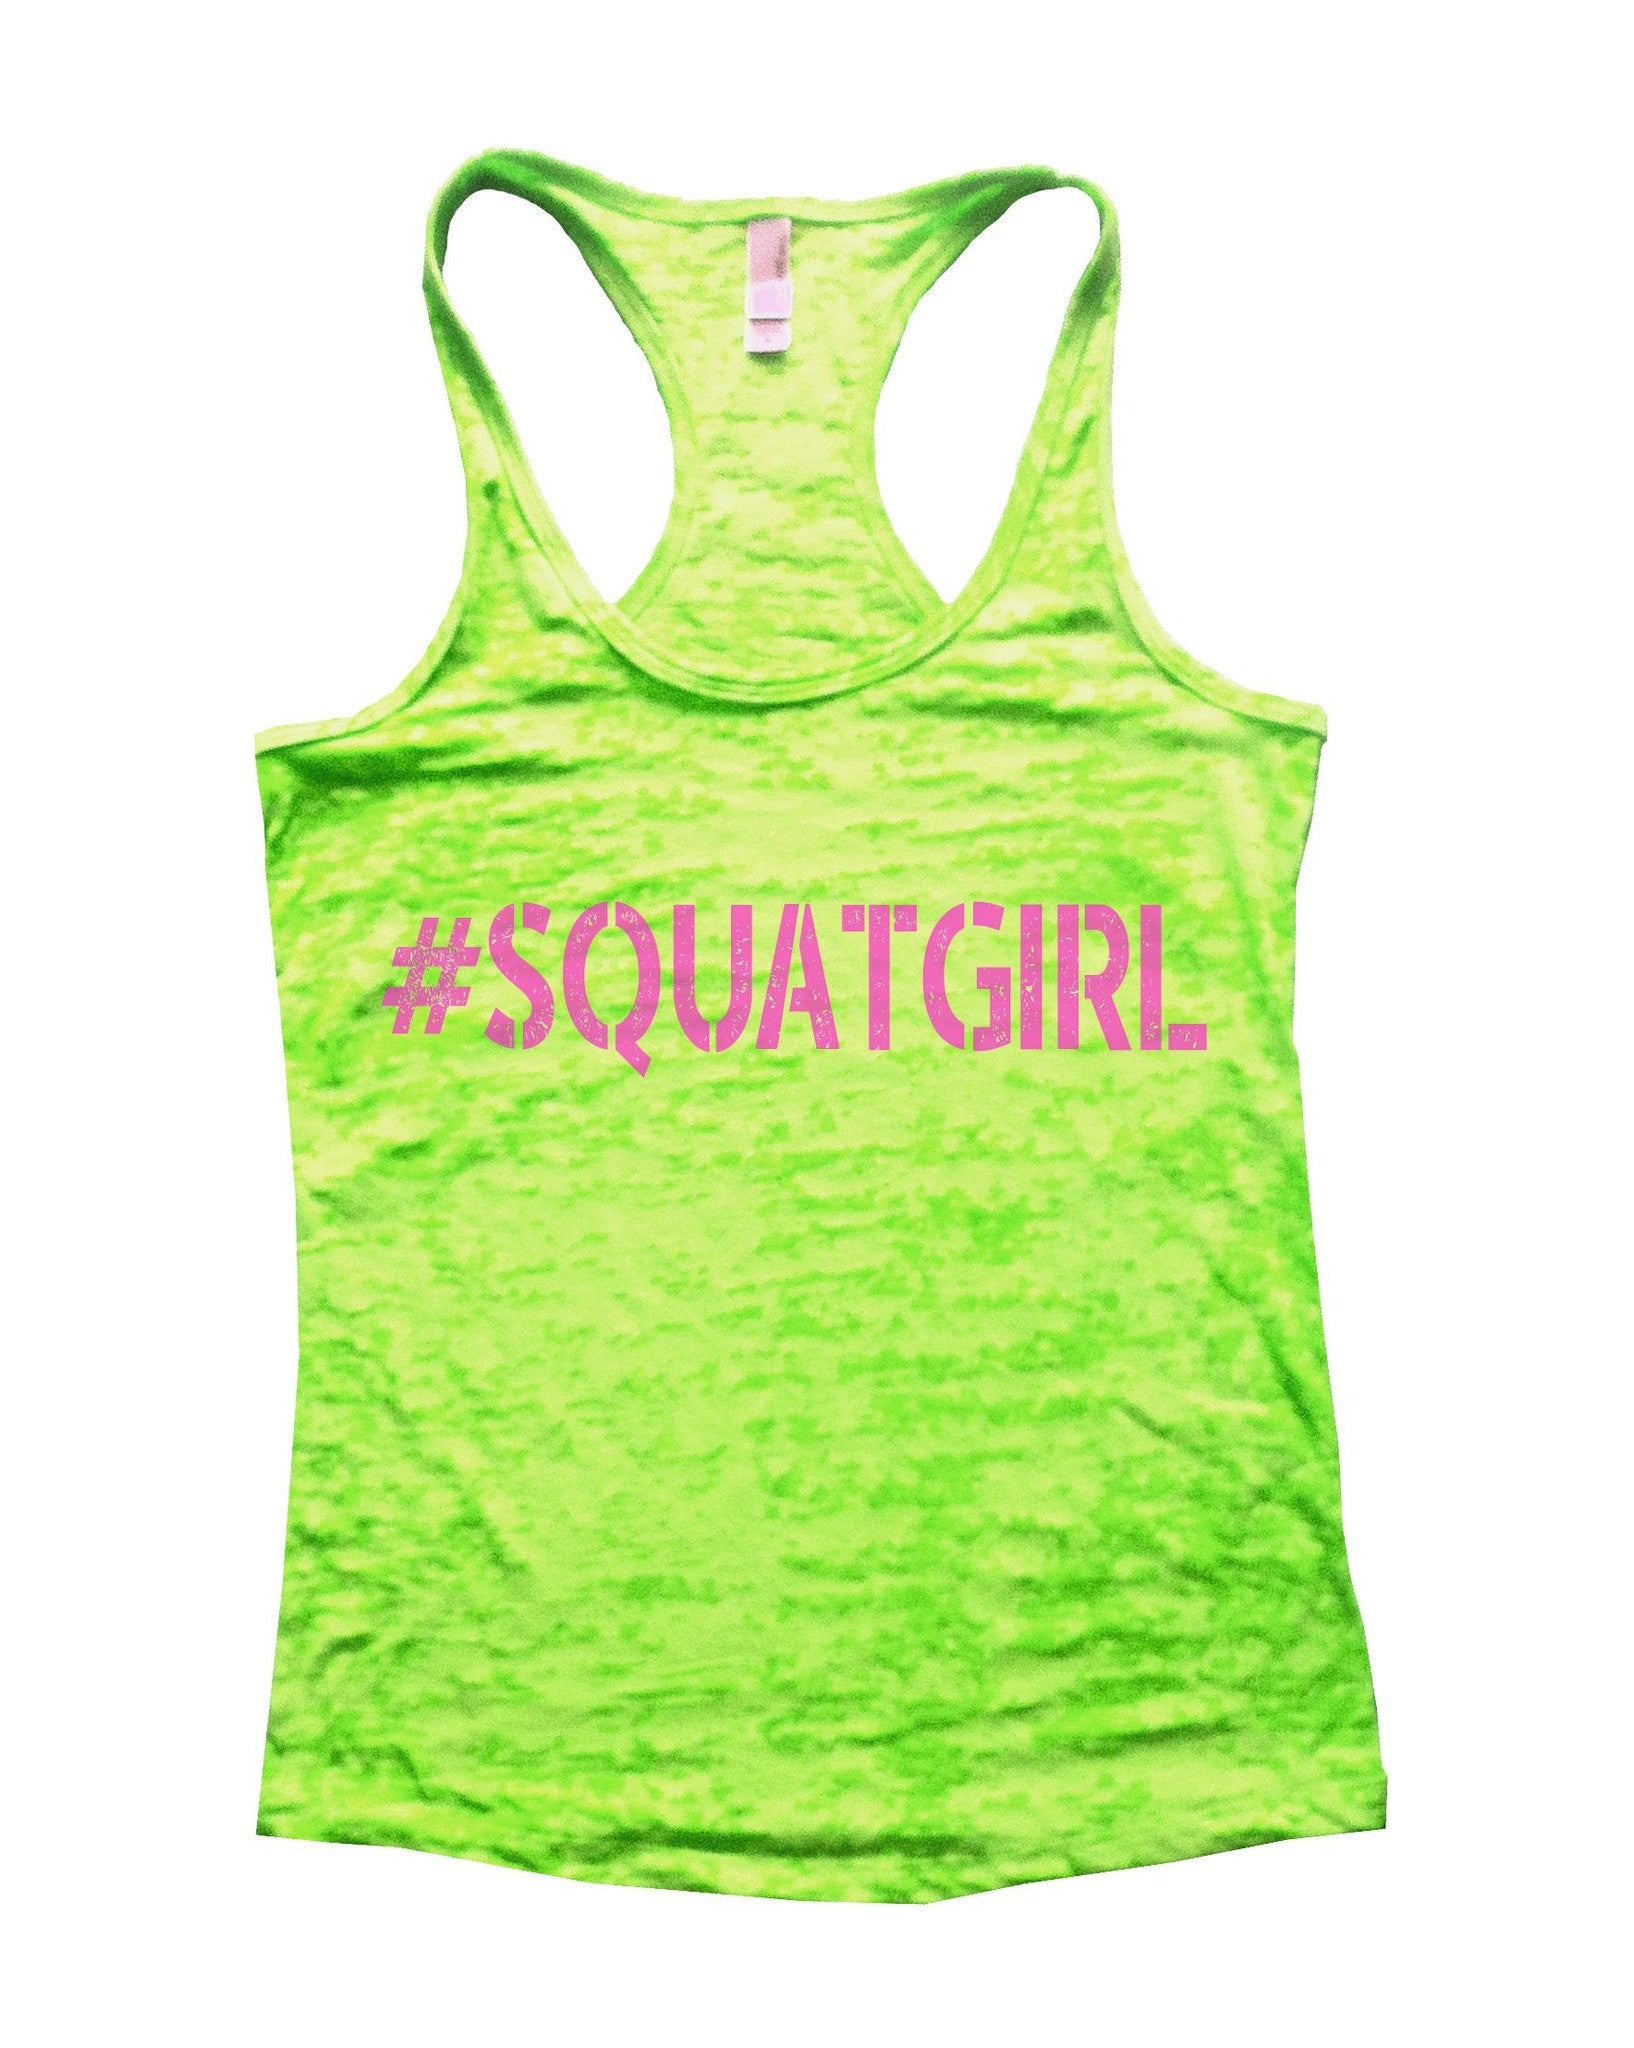 SquatGirl Burnout Tank Top By BurnoutTankTops.com - 637 - Funny Shirts Tank Tops Burnouts and Triblends  - 5